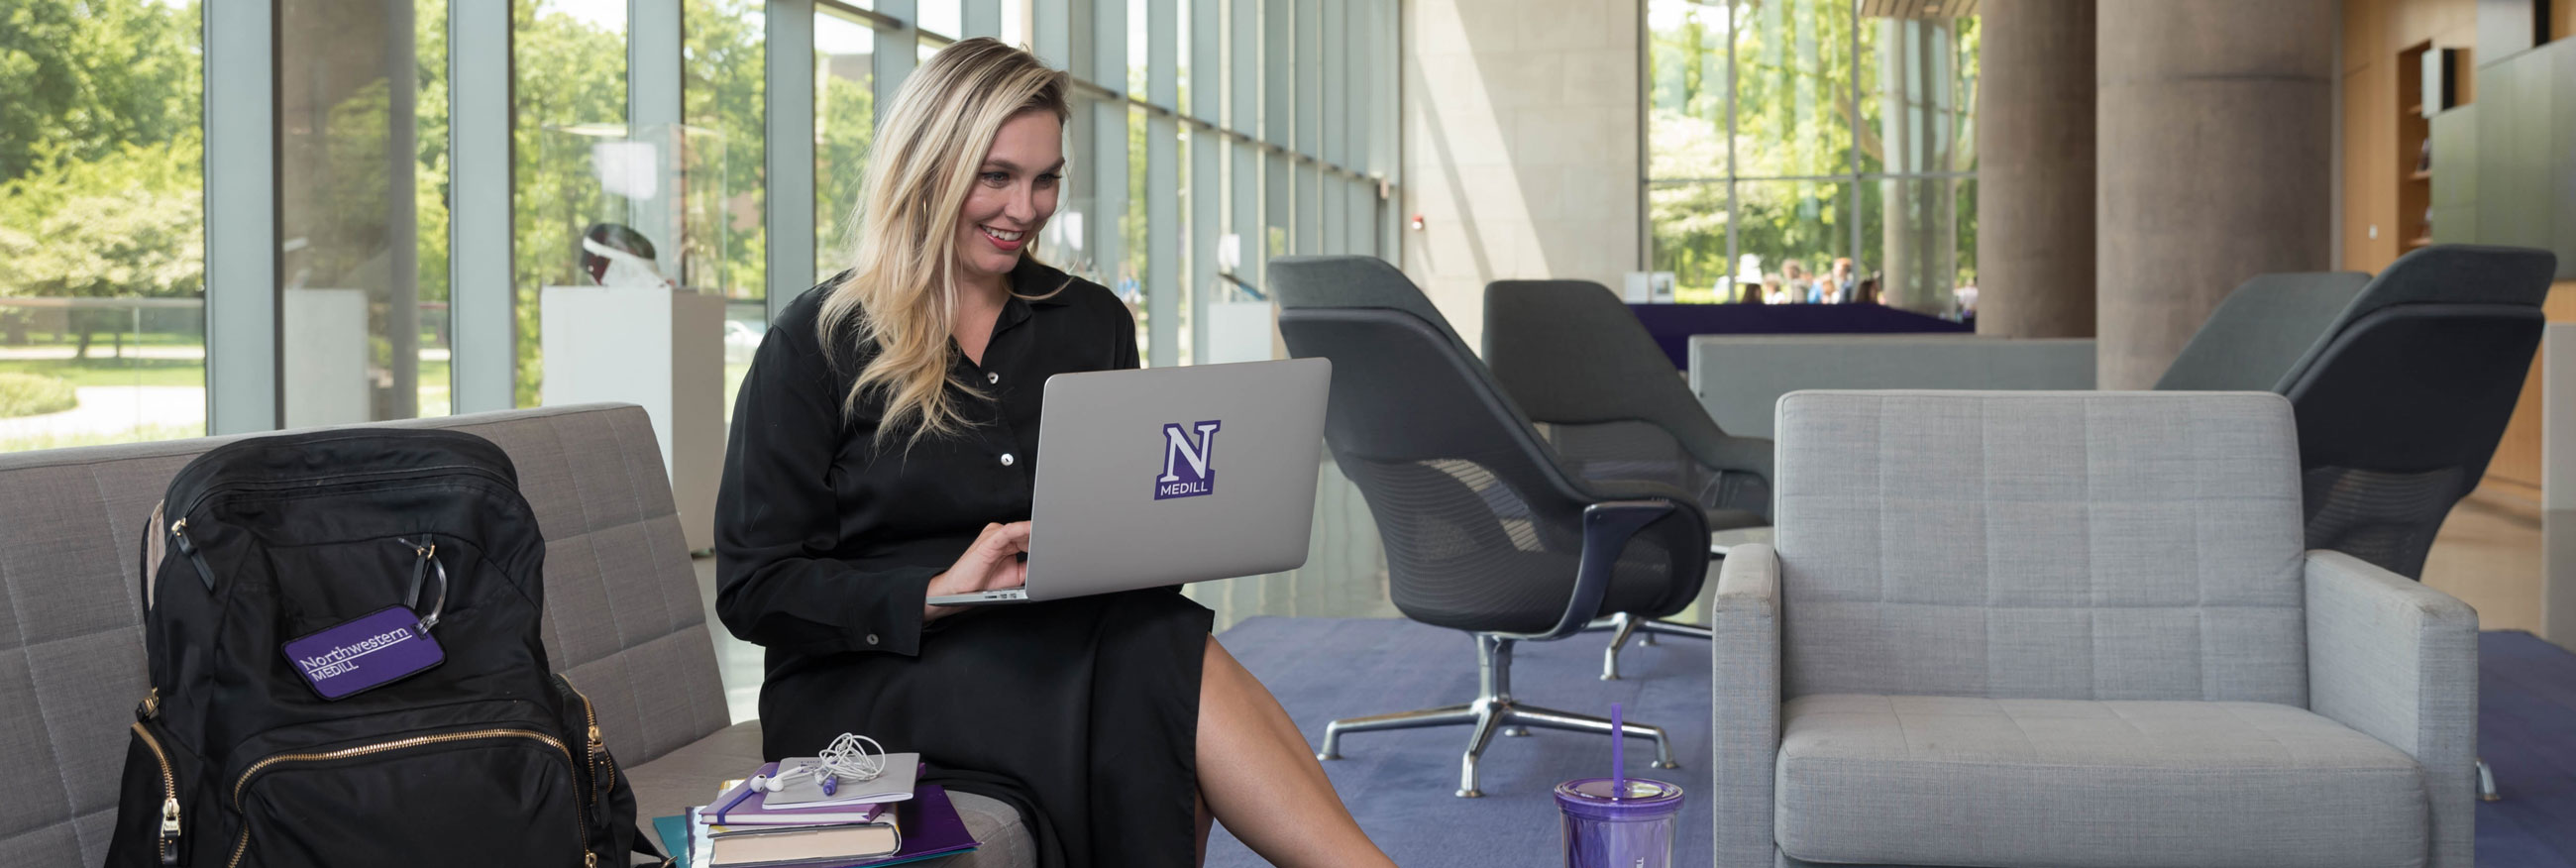 A student sits in a modern work space and works on a laptop computer while sitting on a couch